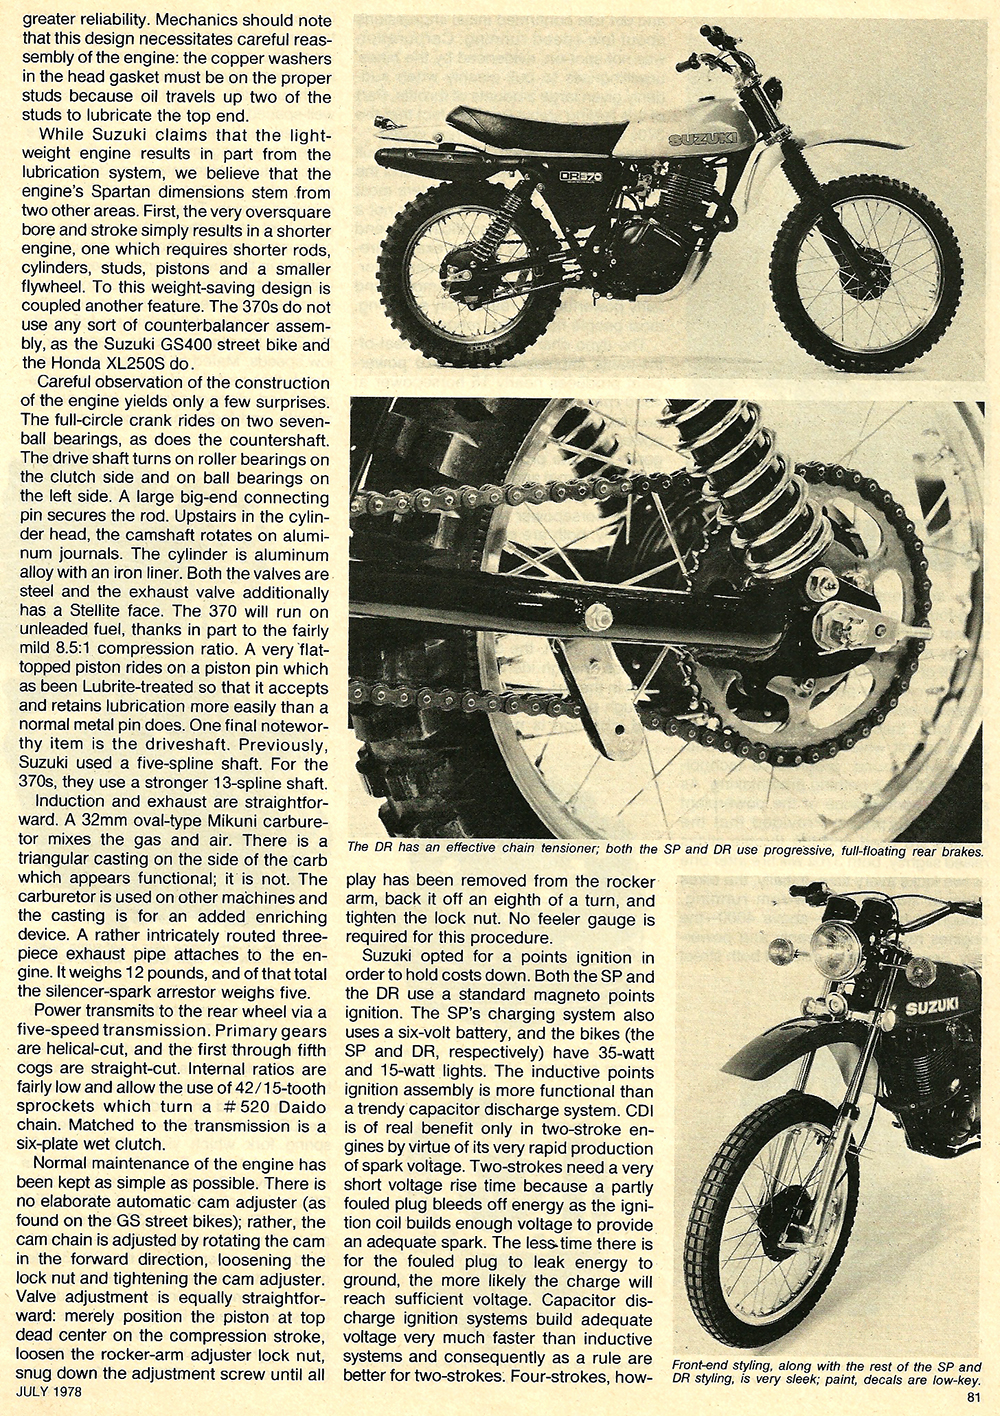 1978 Suzuki DR SP 370 road test 04.jpg